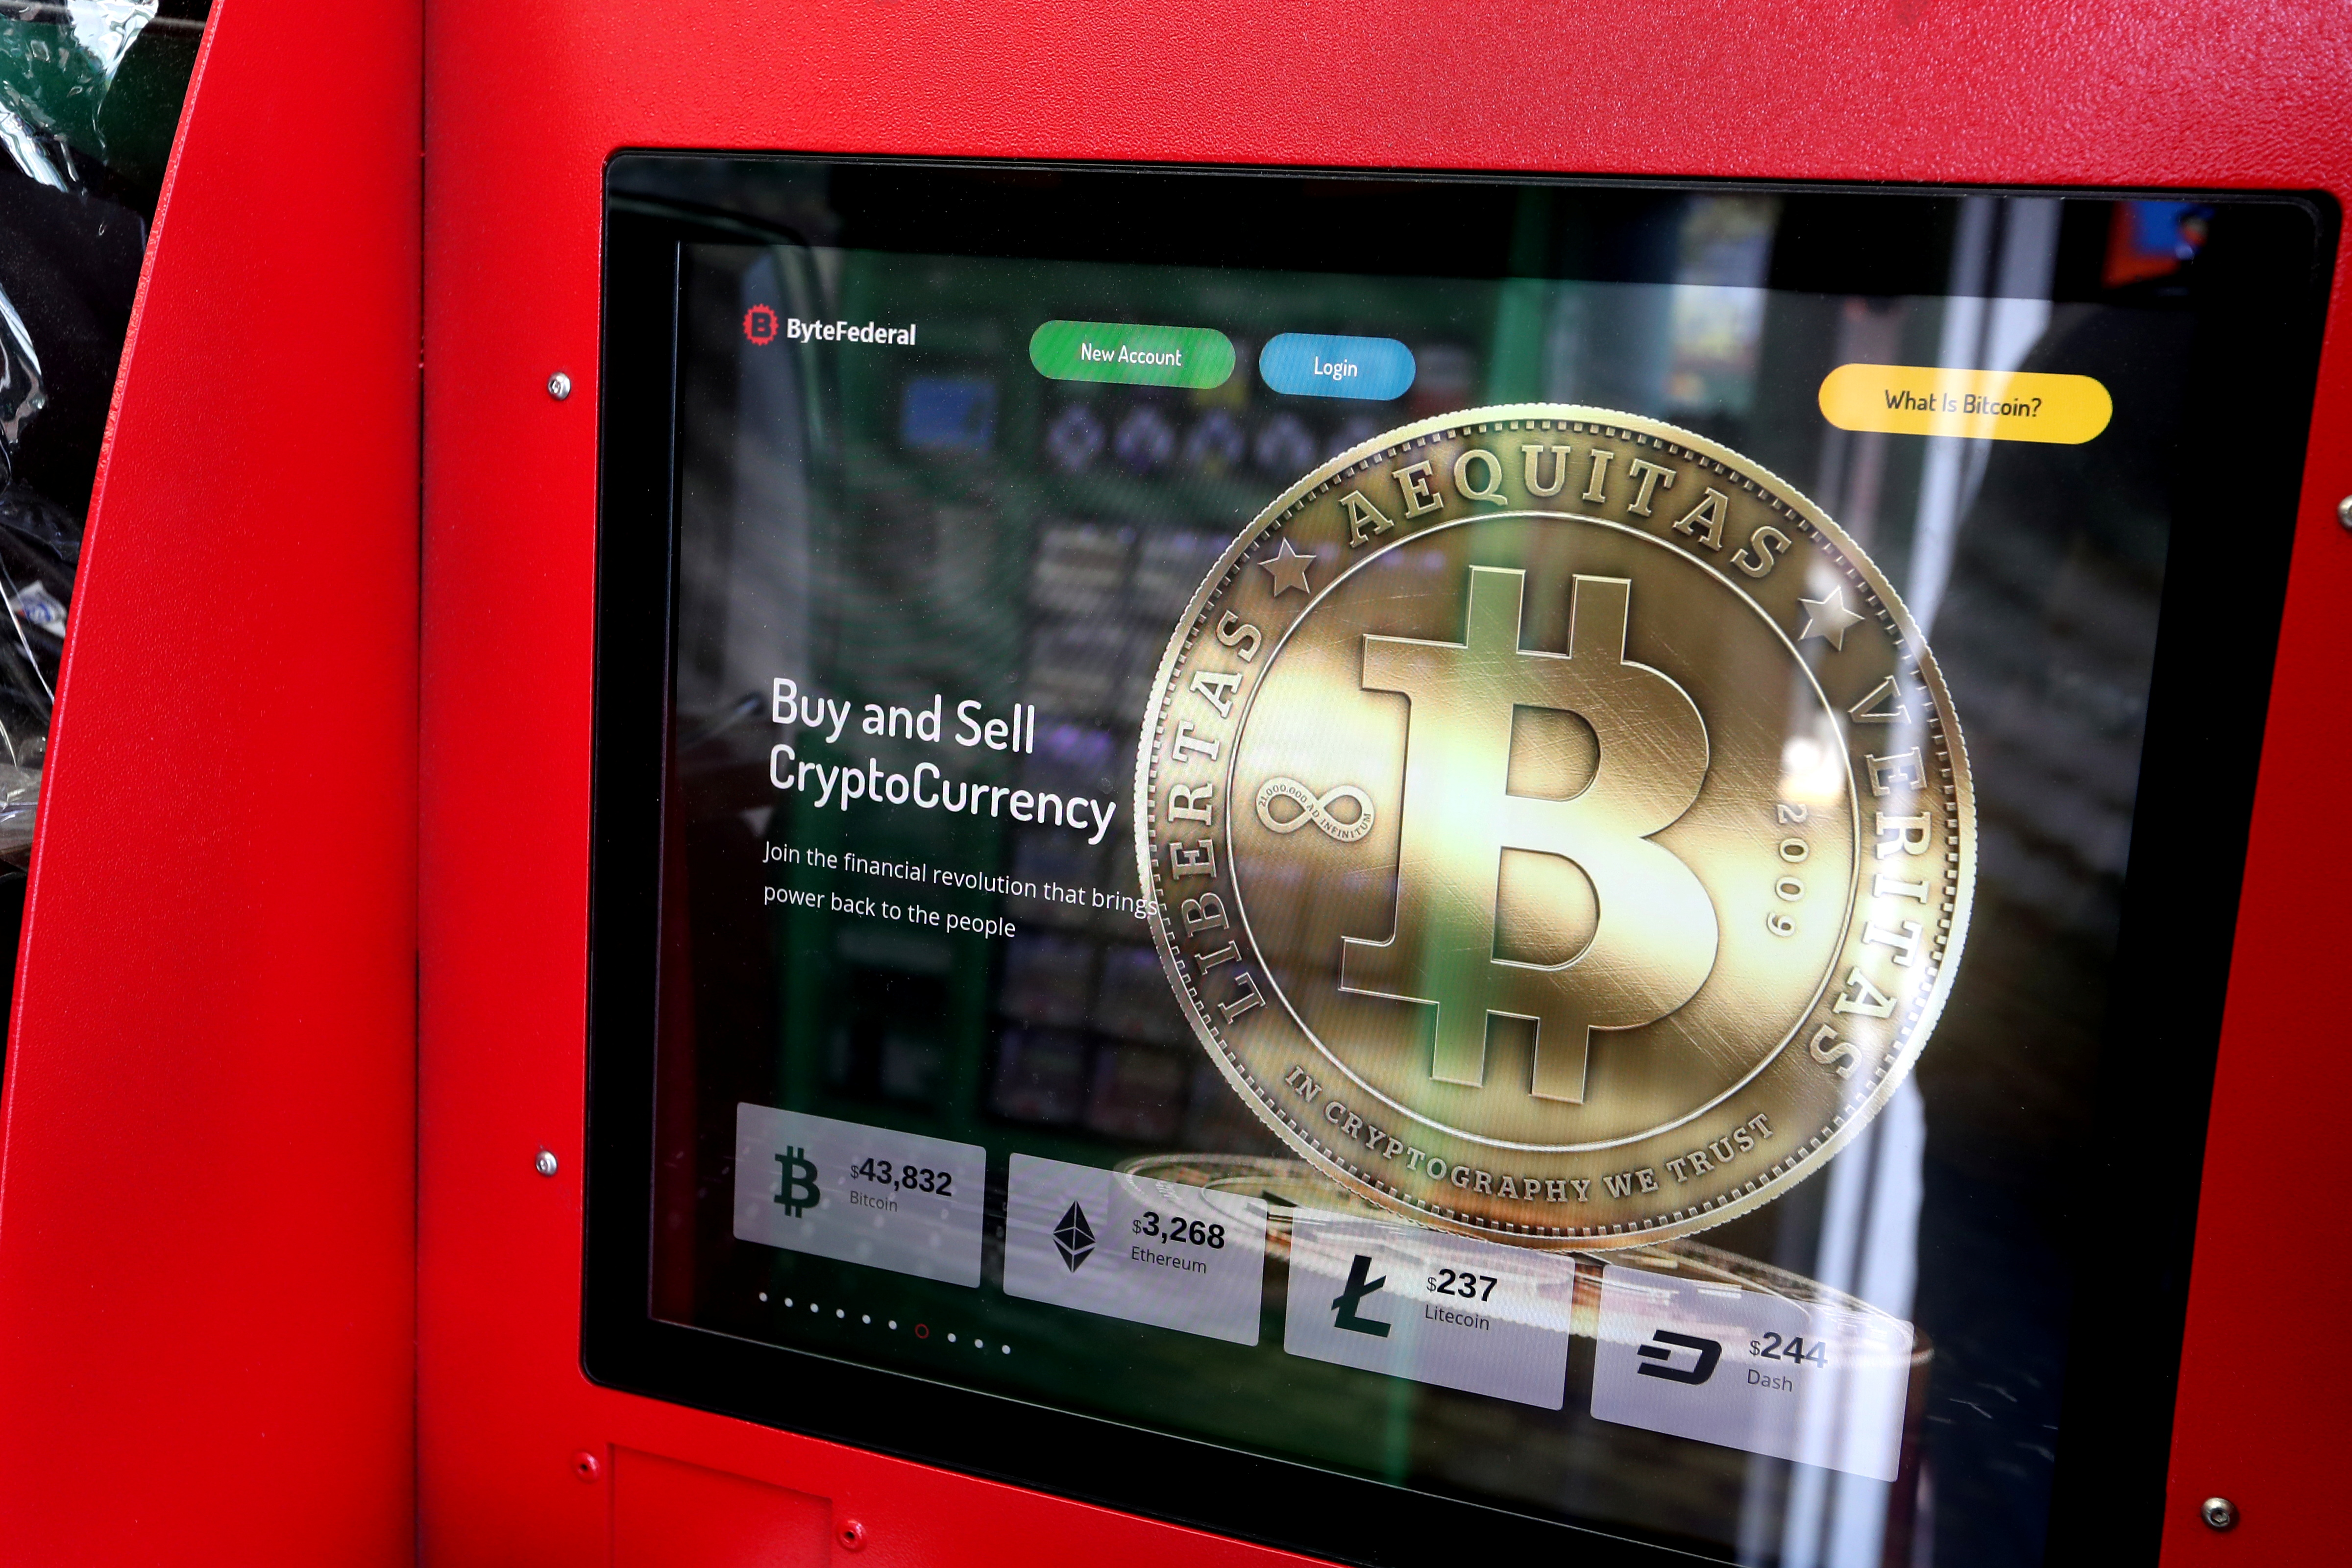 A crypto currency ATM machine is pictured in a shop in Union City, New Jersey, U.S., May 19, 2021. REUTERS/Mike Segar